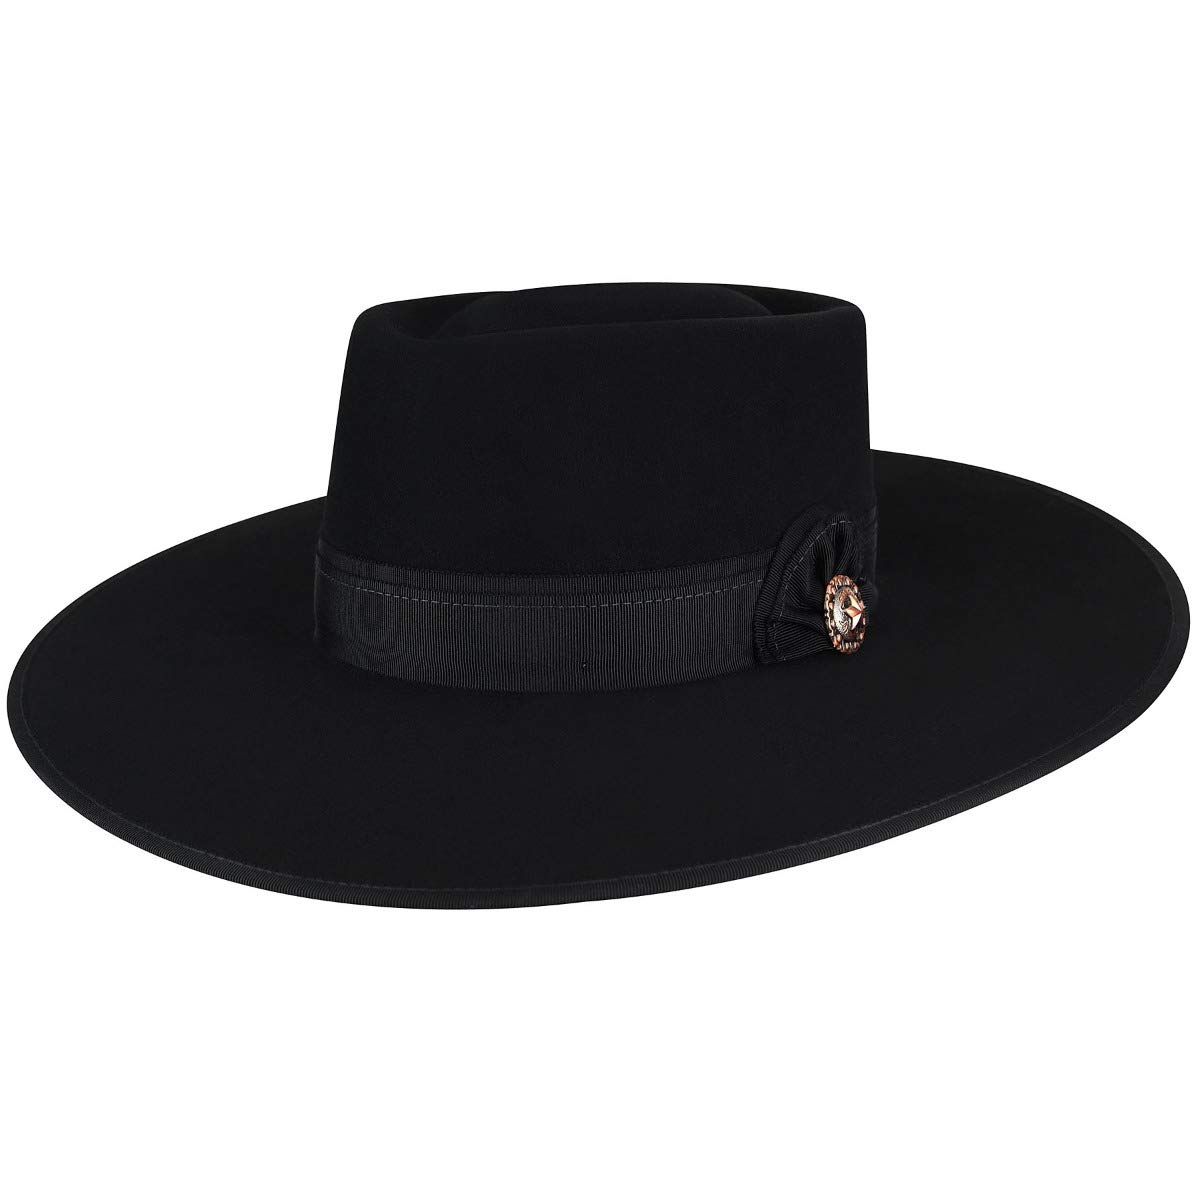 Renegade by Bailey Cowpuncher Western Hat